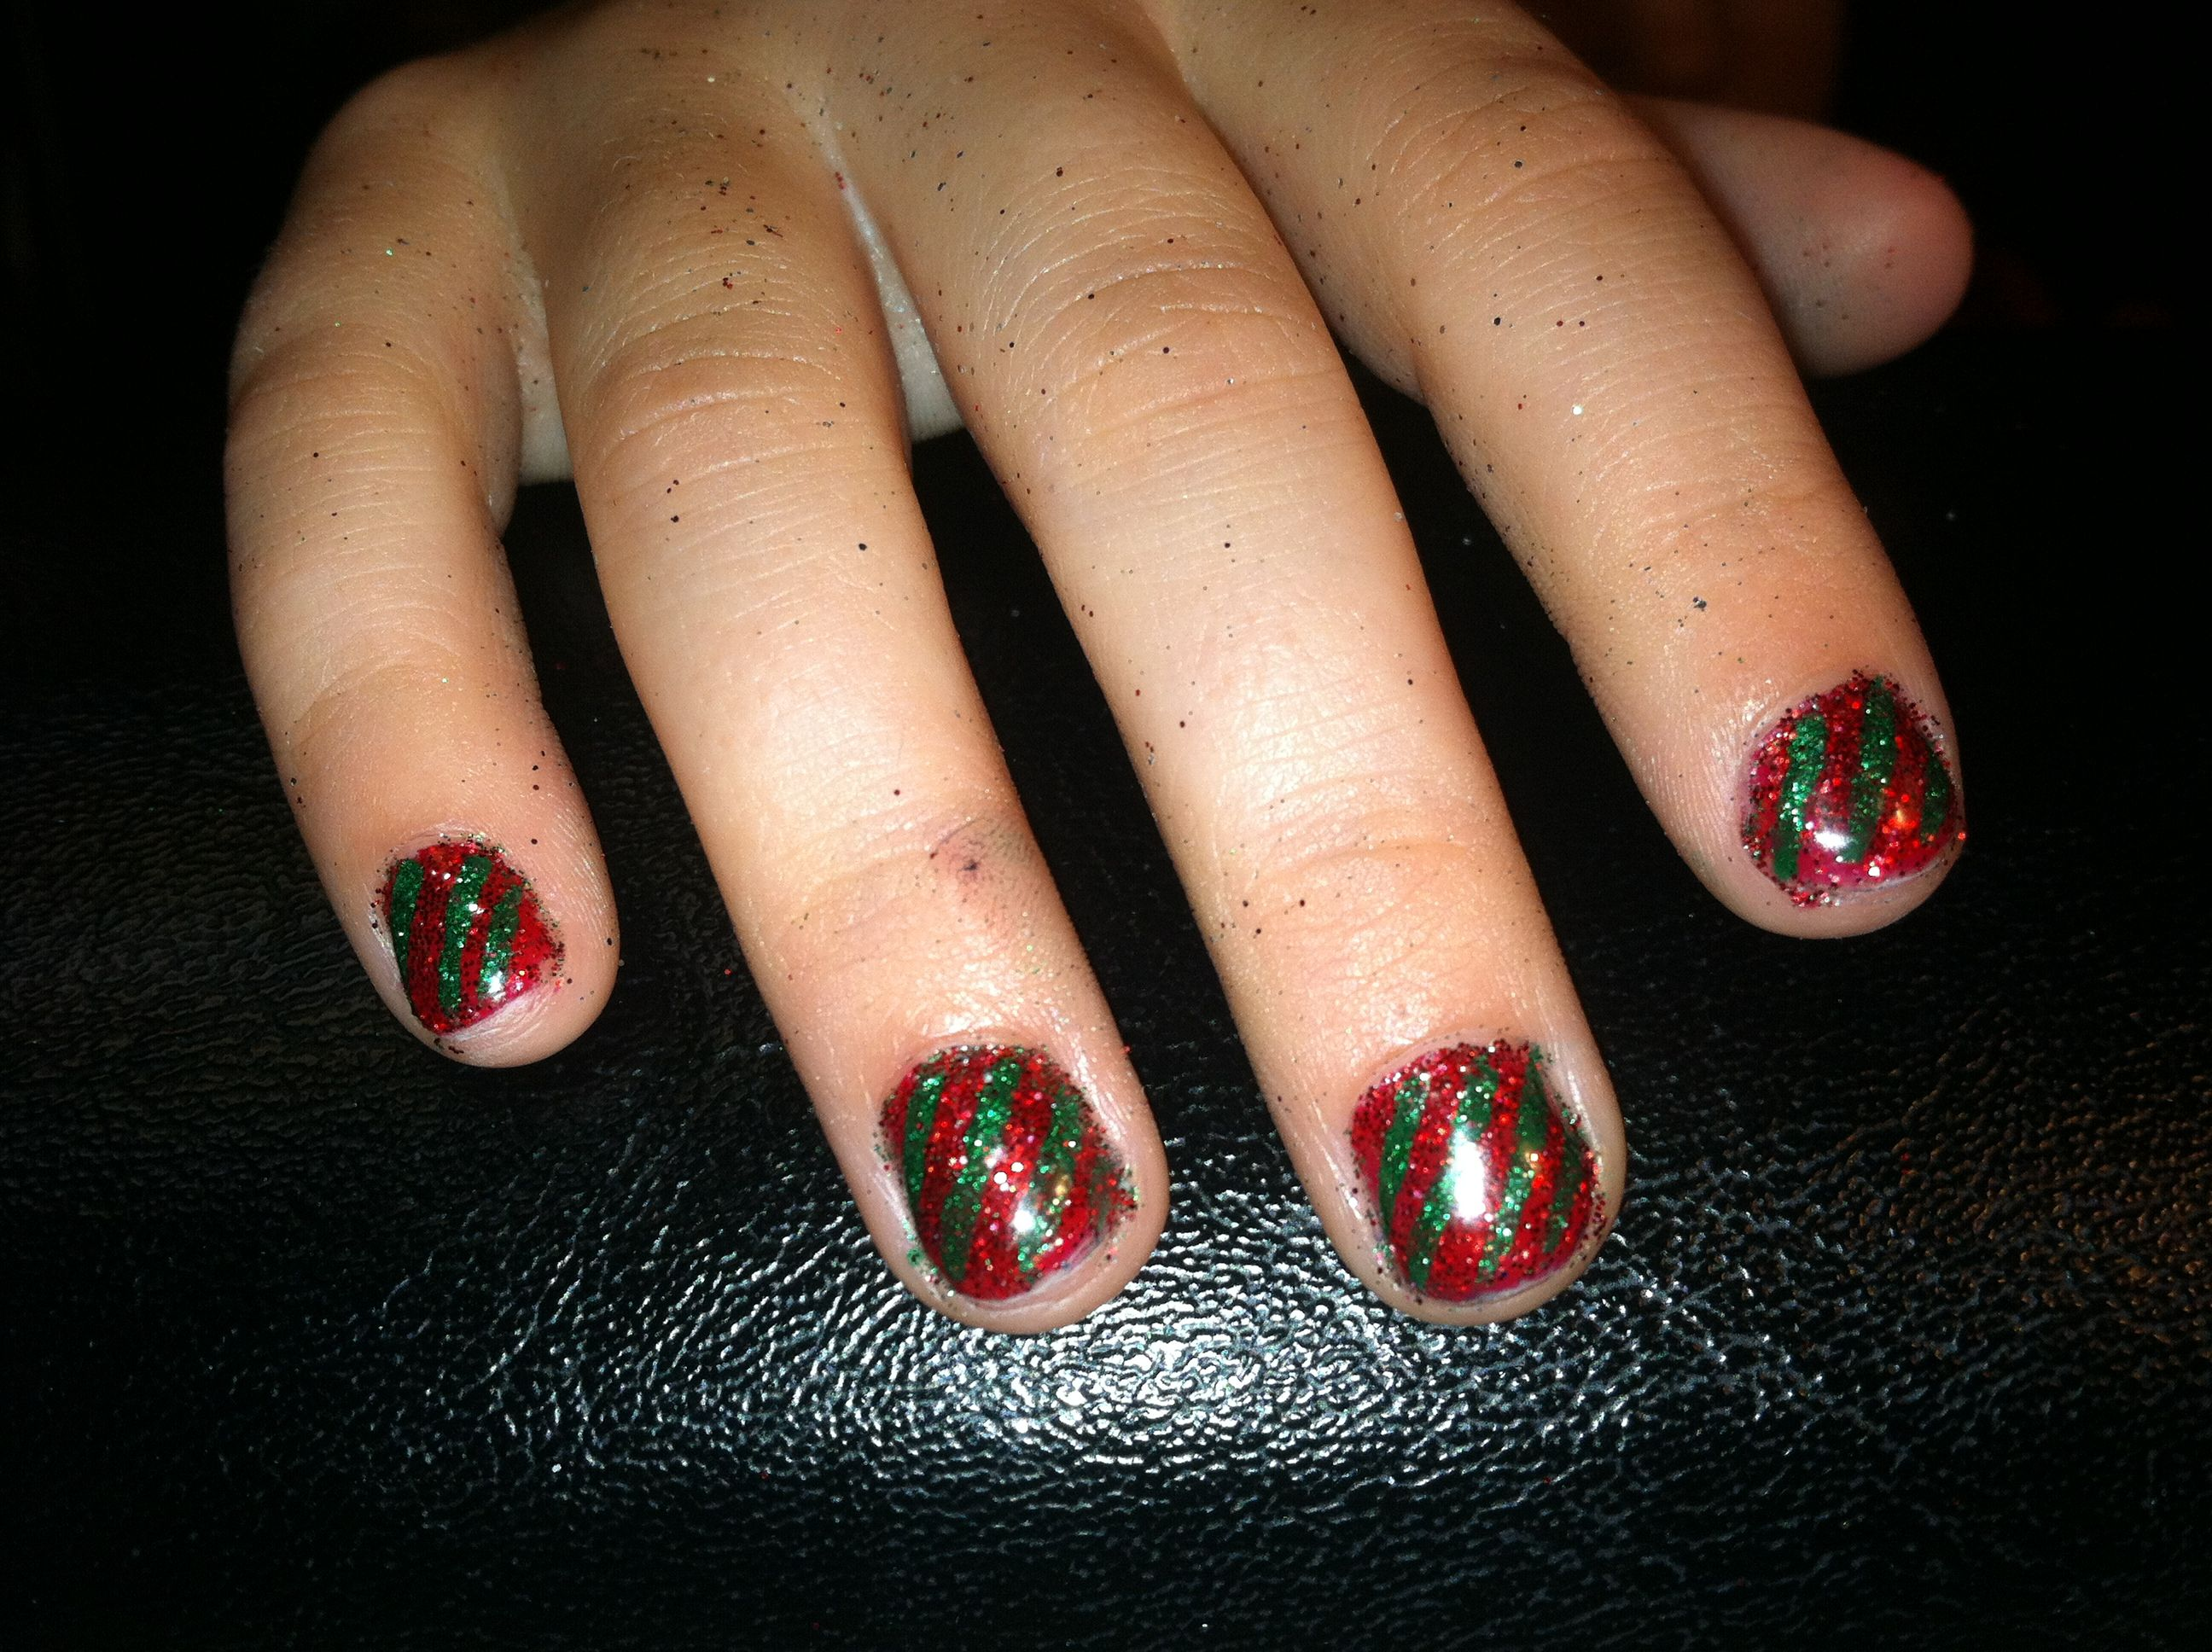 Ready for Santa!   (Nails by Tammy)